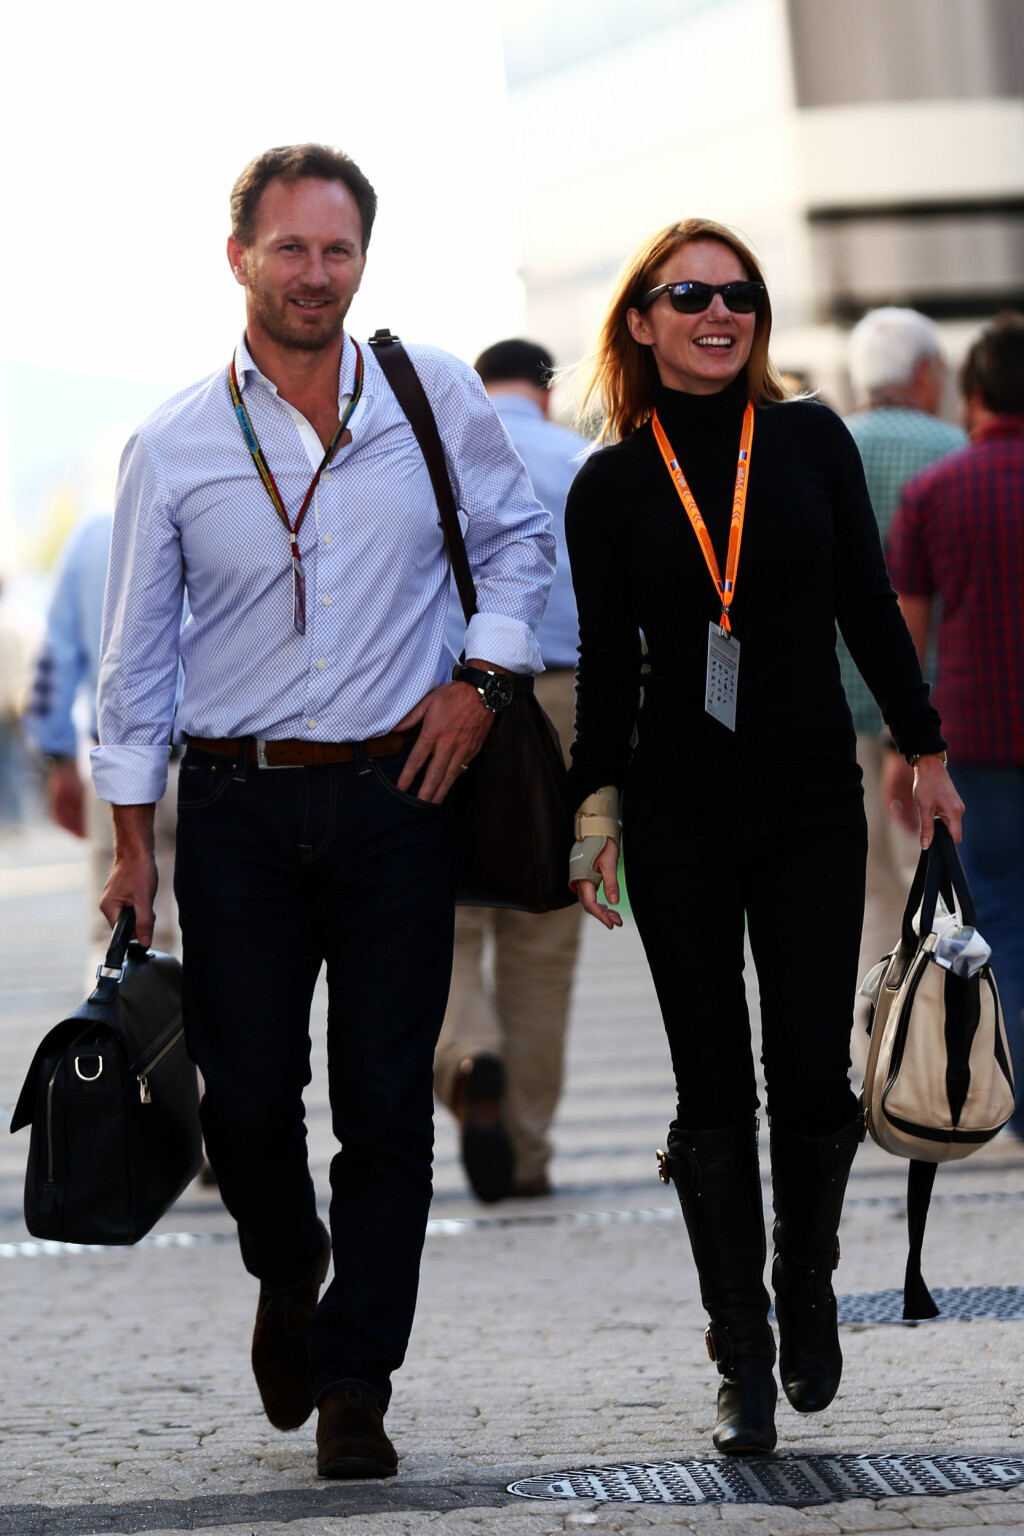 VED MANNENS SIDE: Geri Halliwell og Christian Horner er som erteris. For en måned siden var sangstjernen med kjæresten til Sotsji, i anledning russiske Formel 1 Grand Prix. Foto: Action Press/All Over Press